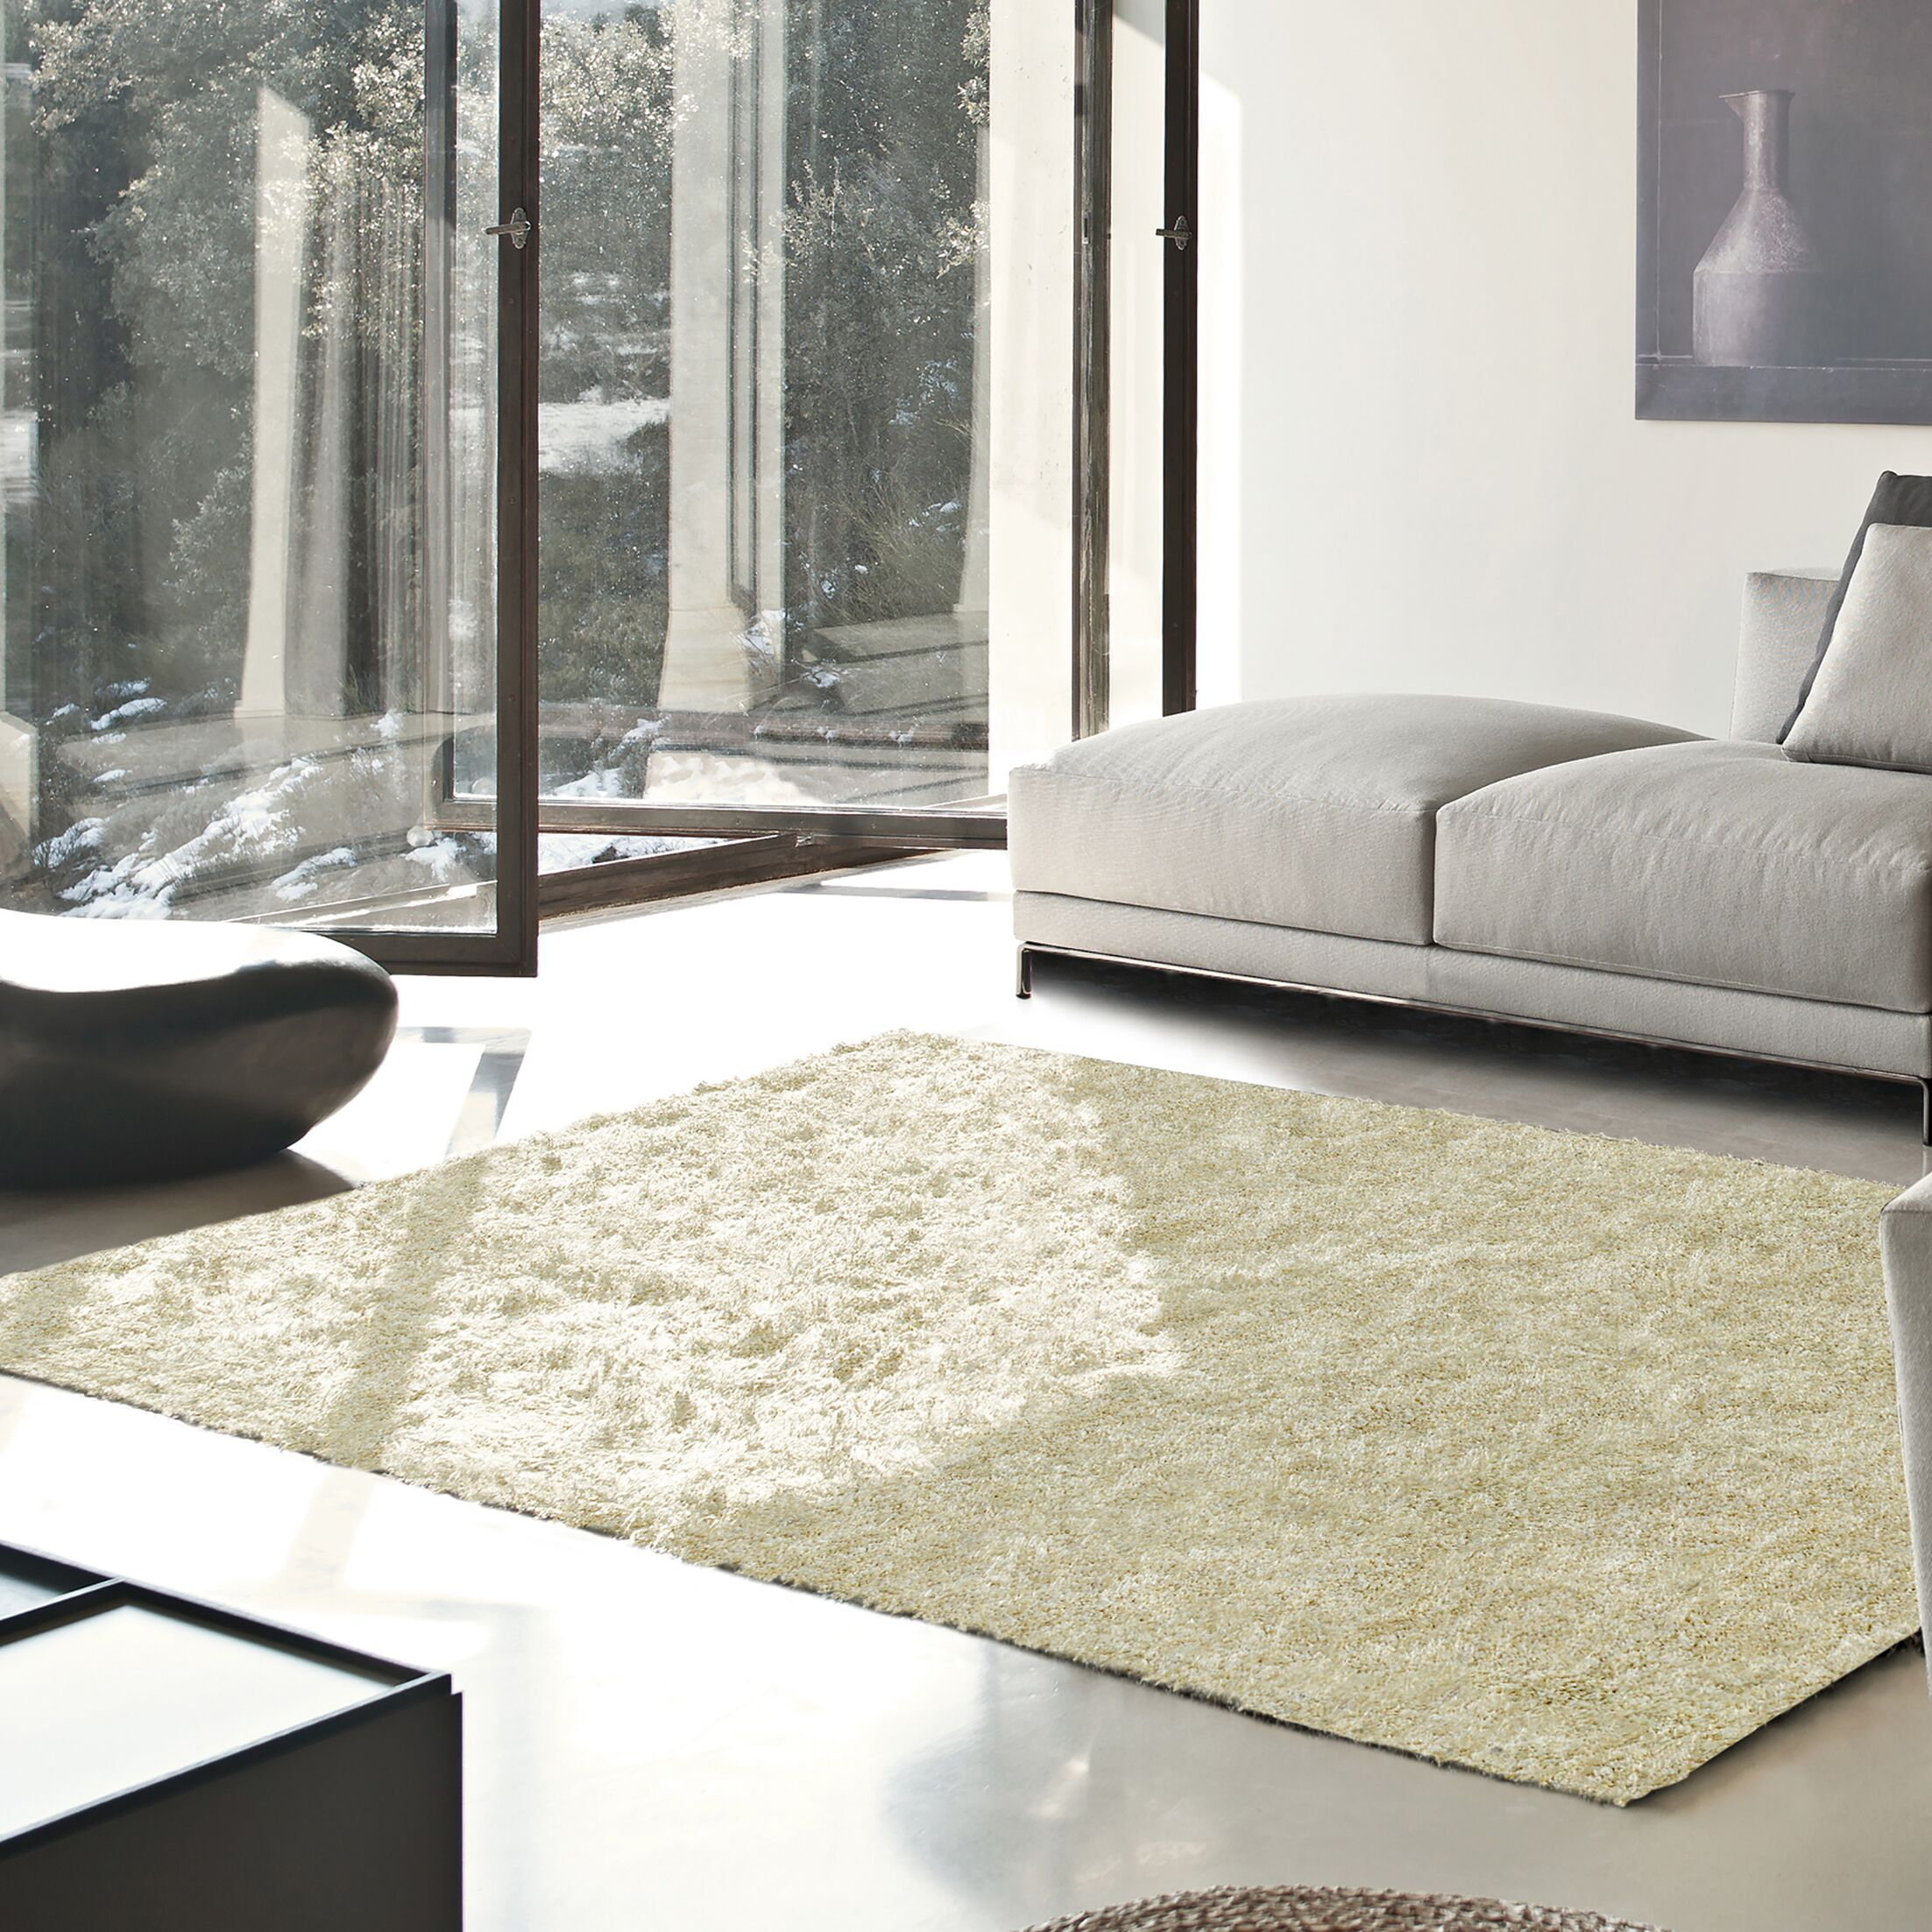 Catharine Hand-Woven Ivory Area Rug Rug Size: Rectangle 6' x 9'